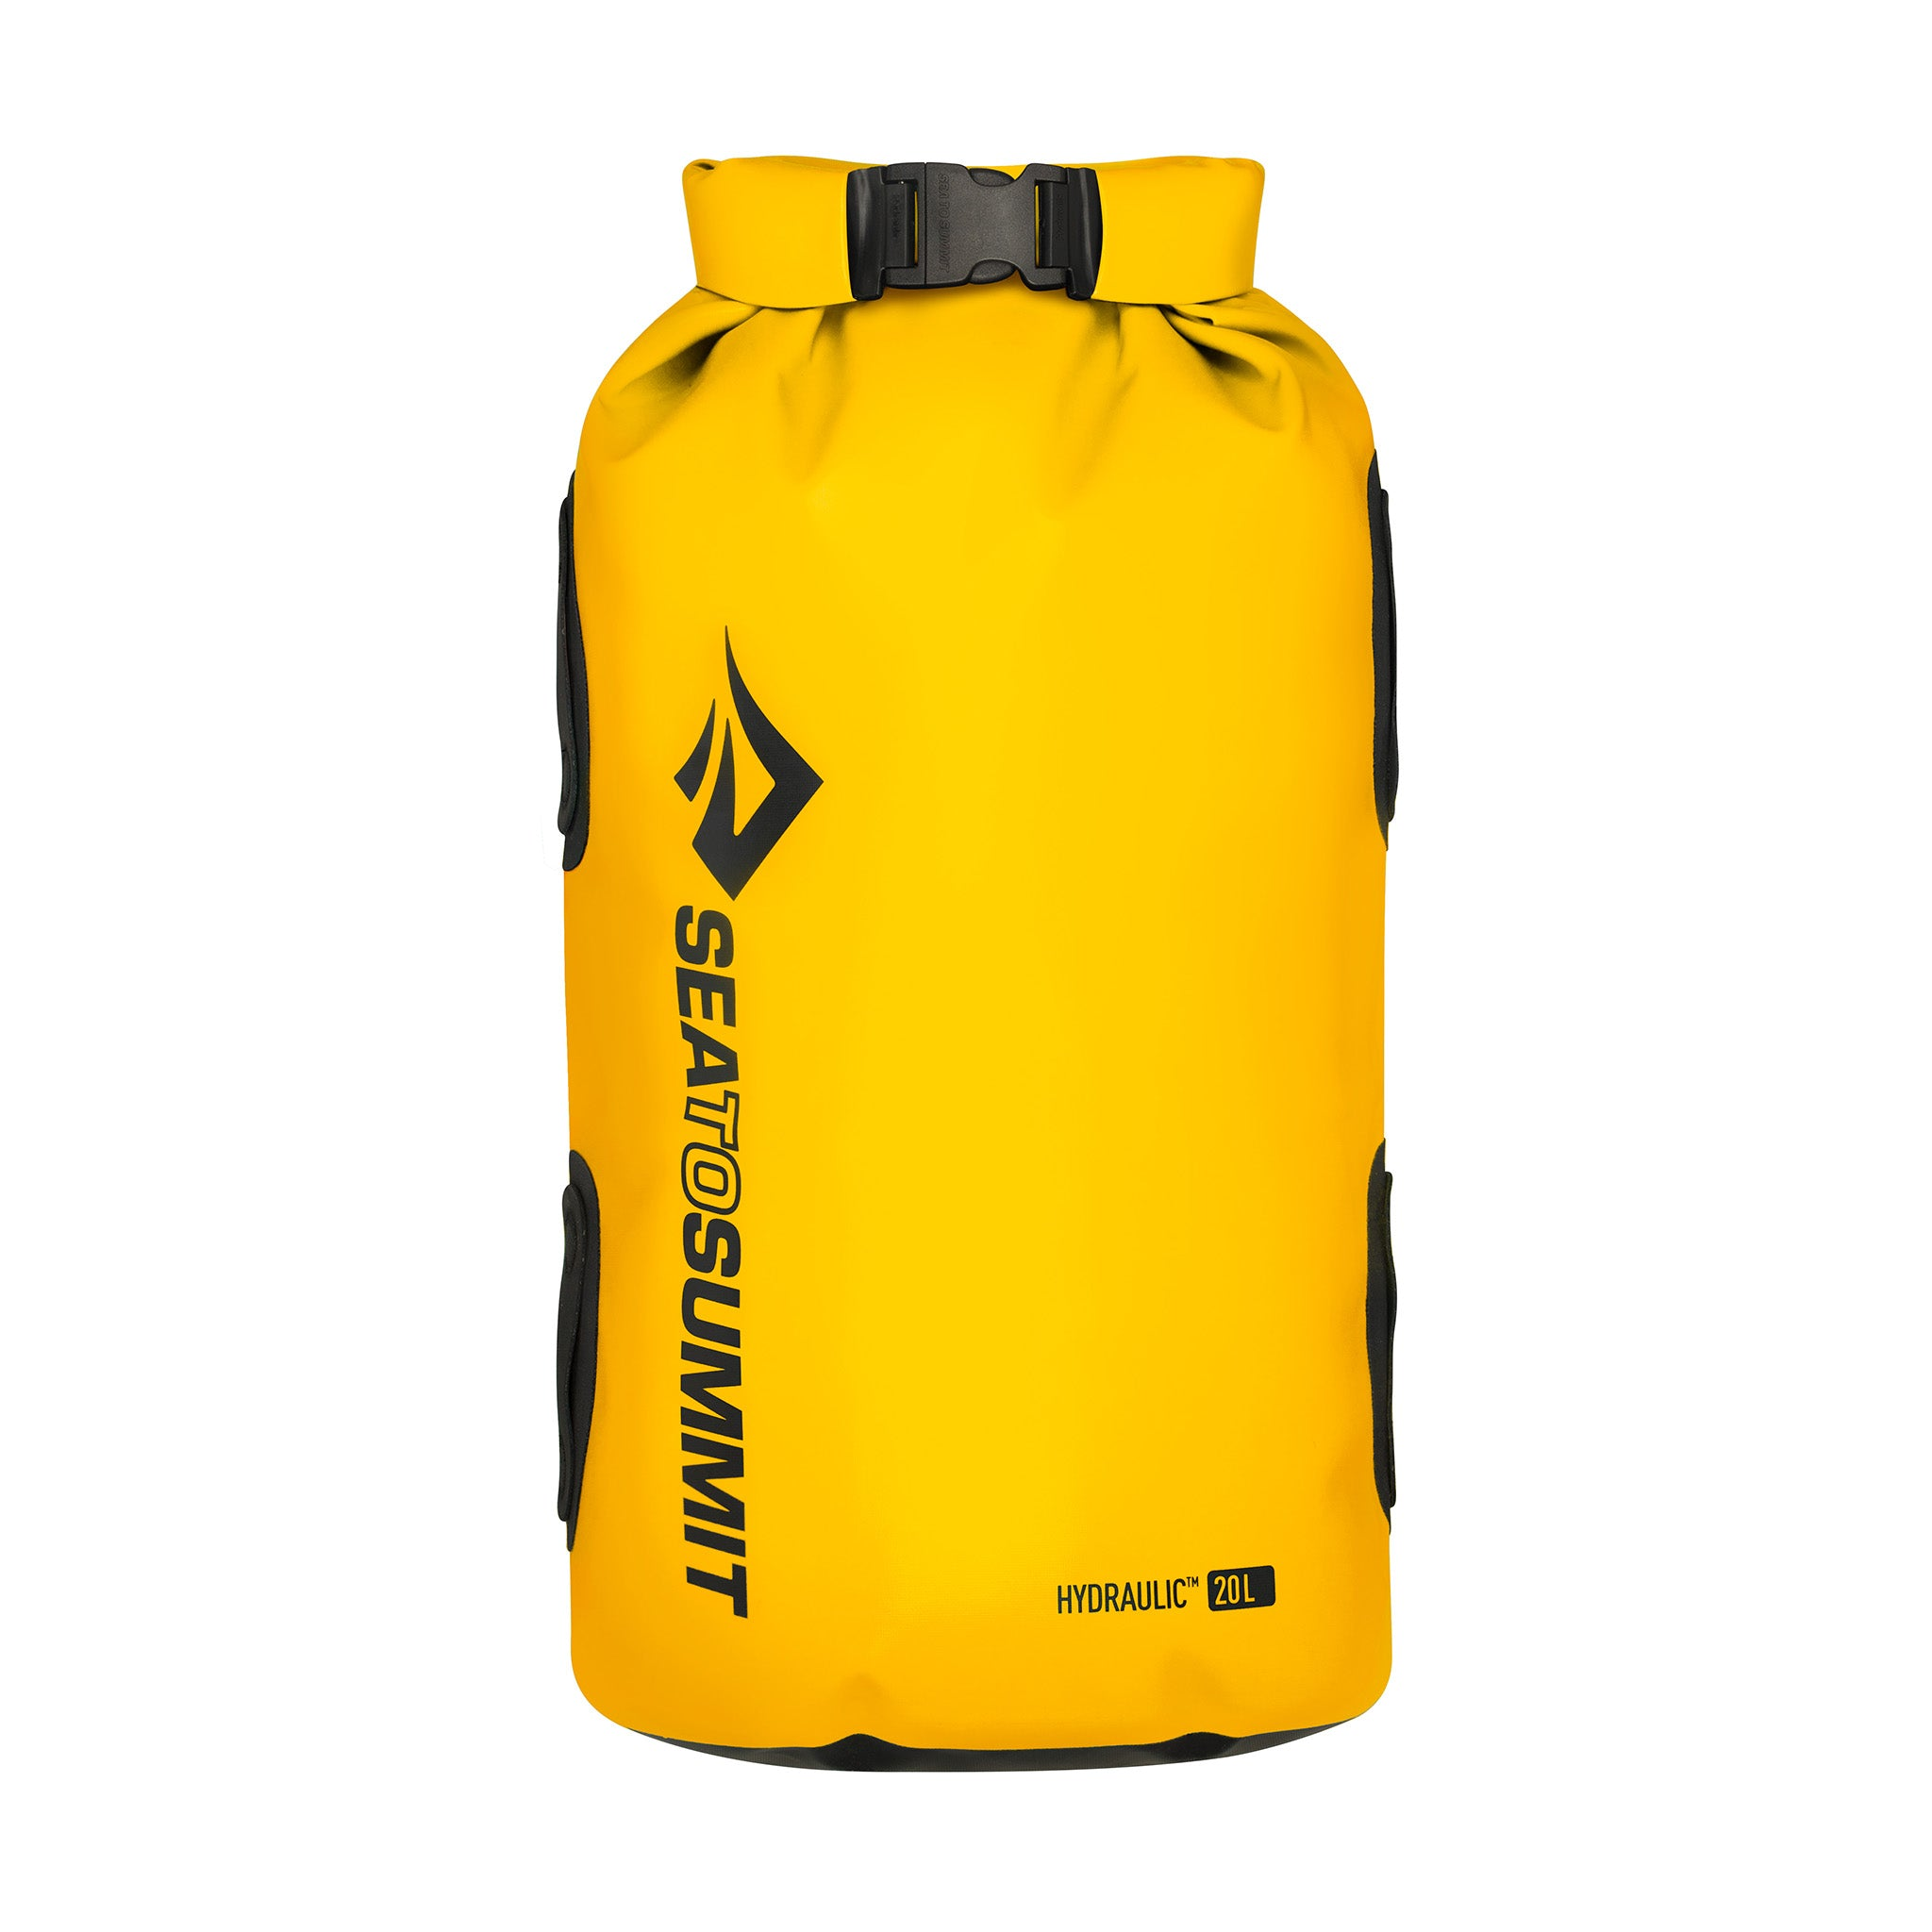 Hydraulic_Dry_Bag___20_Liter___Yellow